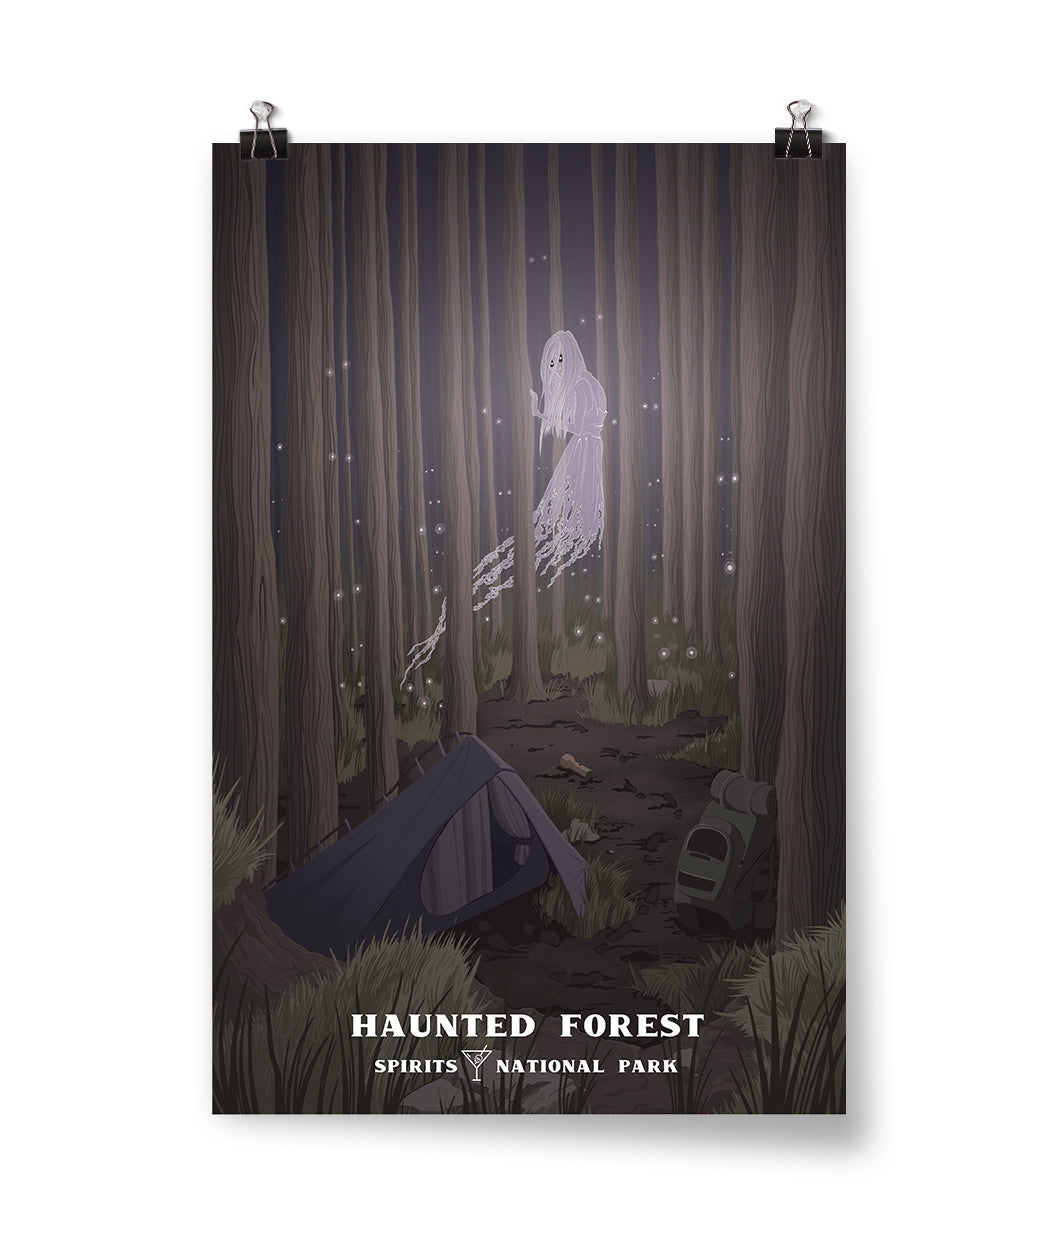 Haunted Forest Spirits National Park